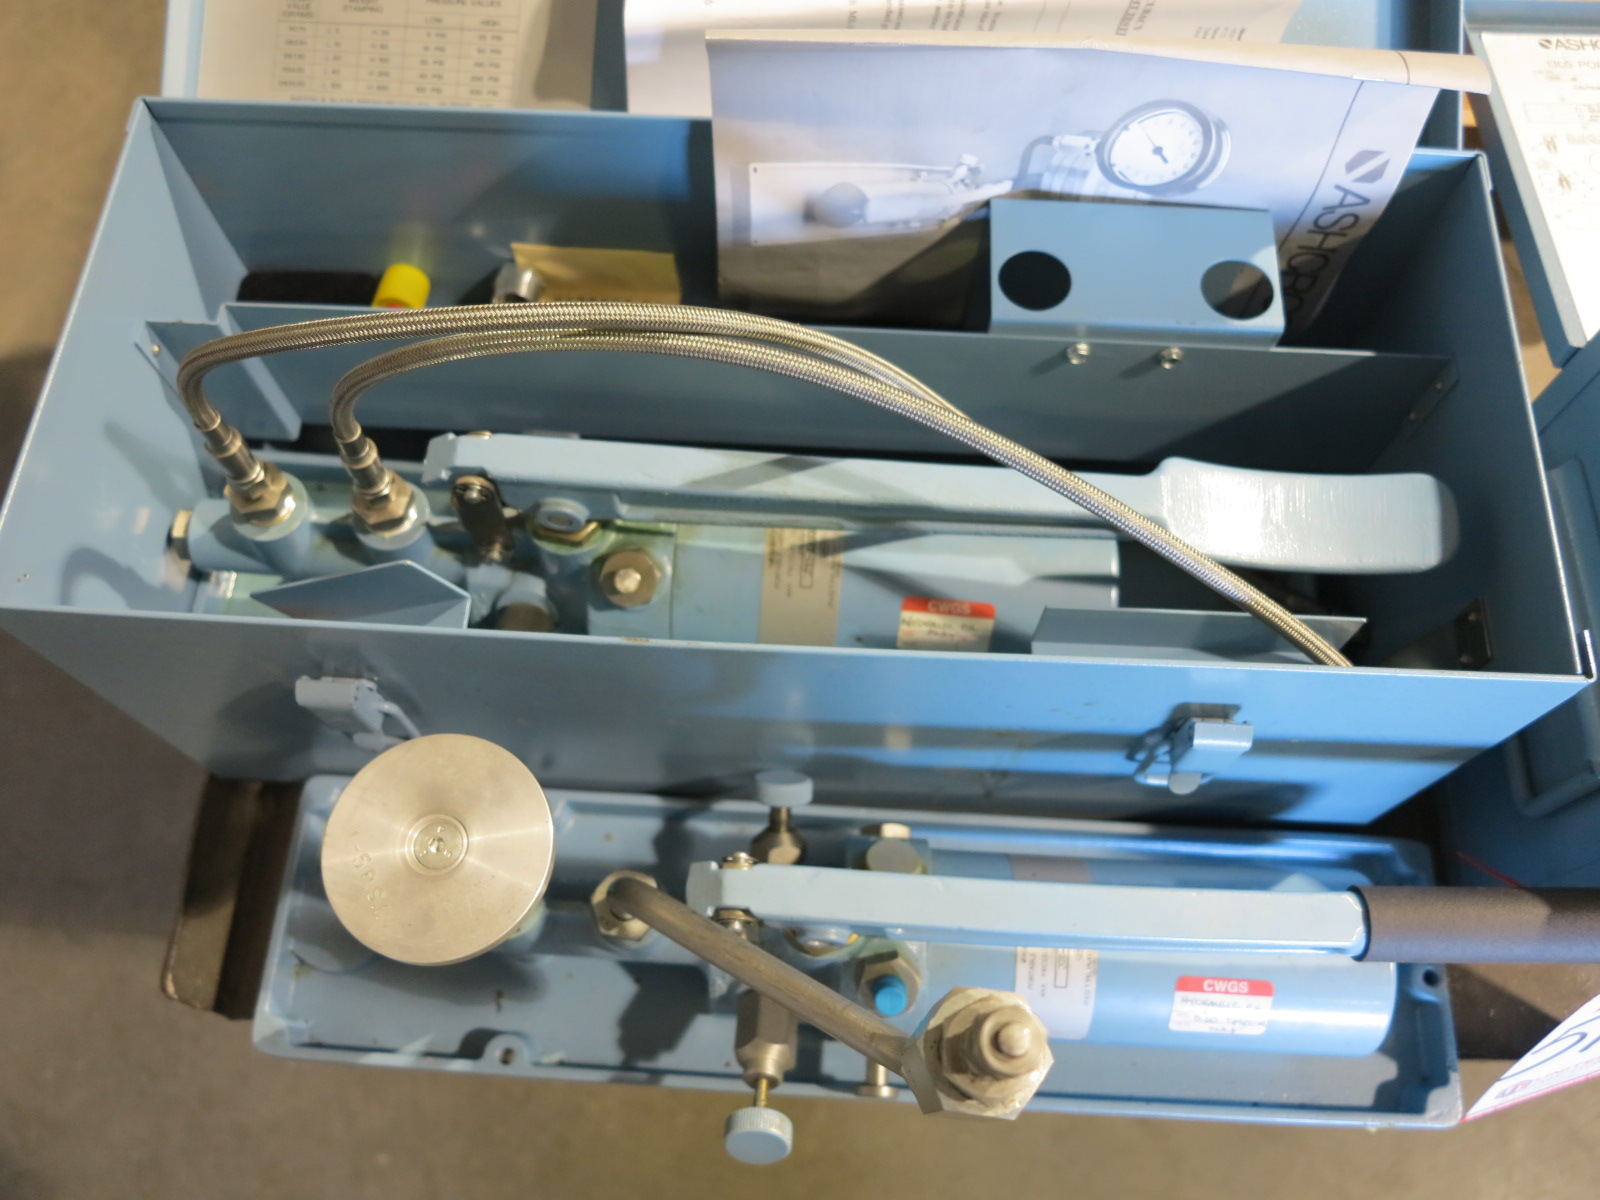 LOT - ASHCROFT 1305 PORTABLE DEAD WEIGHT TESTER, TYPE 1305-D, RANGE 1,000 LBS, S/N 2GH-11563-1, W/ - Image 2 of 2